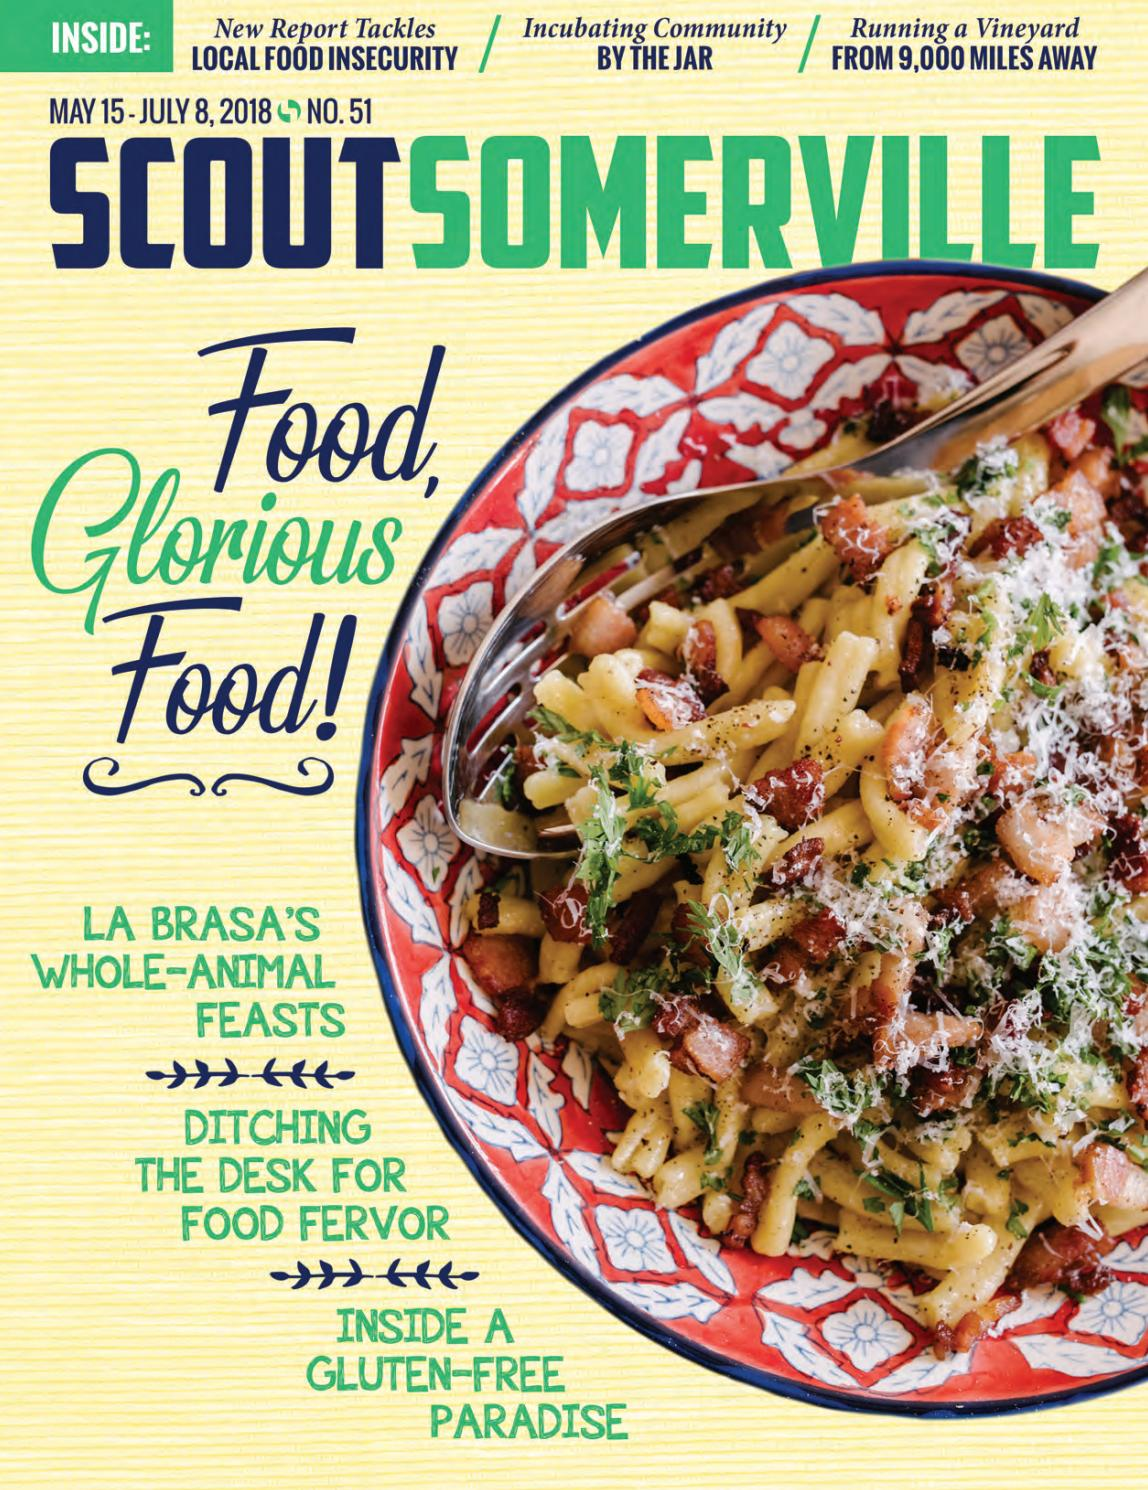 La Cucina Somerville Nj Scout Somerville Food Glorious Food